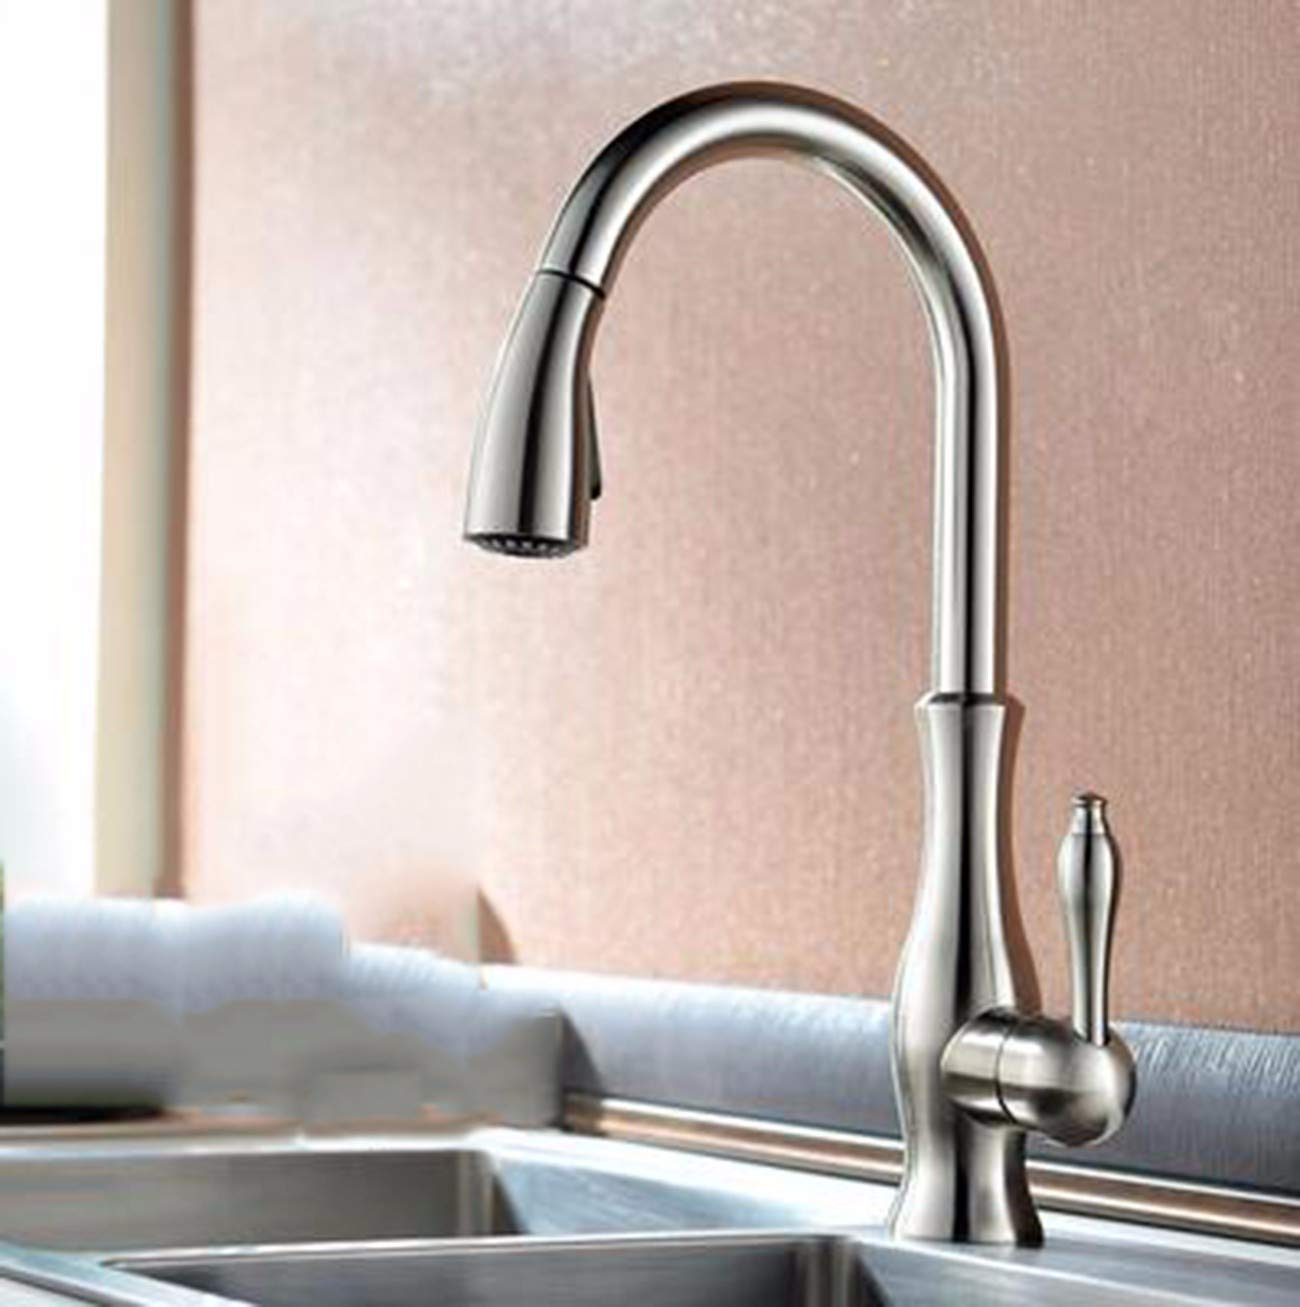 B XPYFaucet Faucet Tap Taps Pull-type kitchen hot and cold splash-proof telescopic copper redating sink home, C